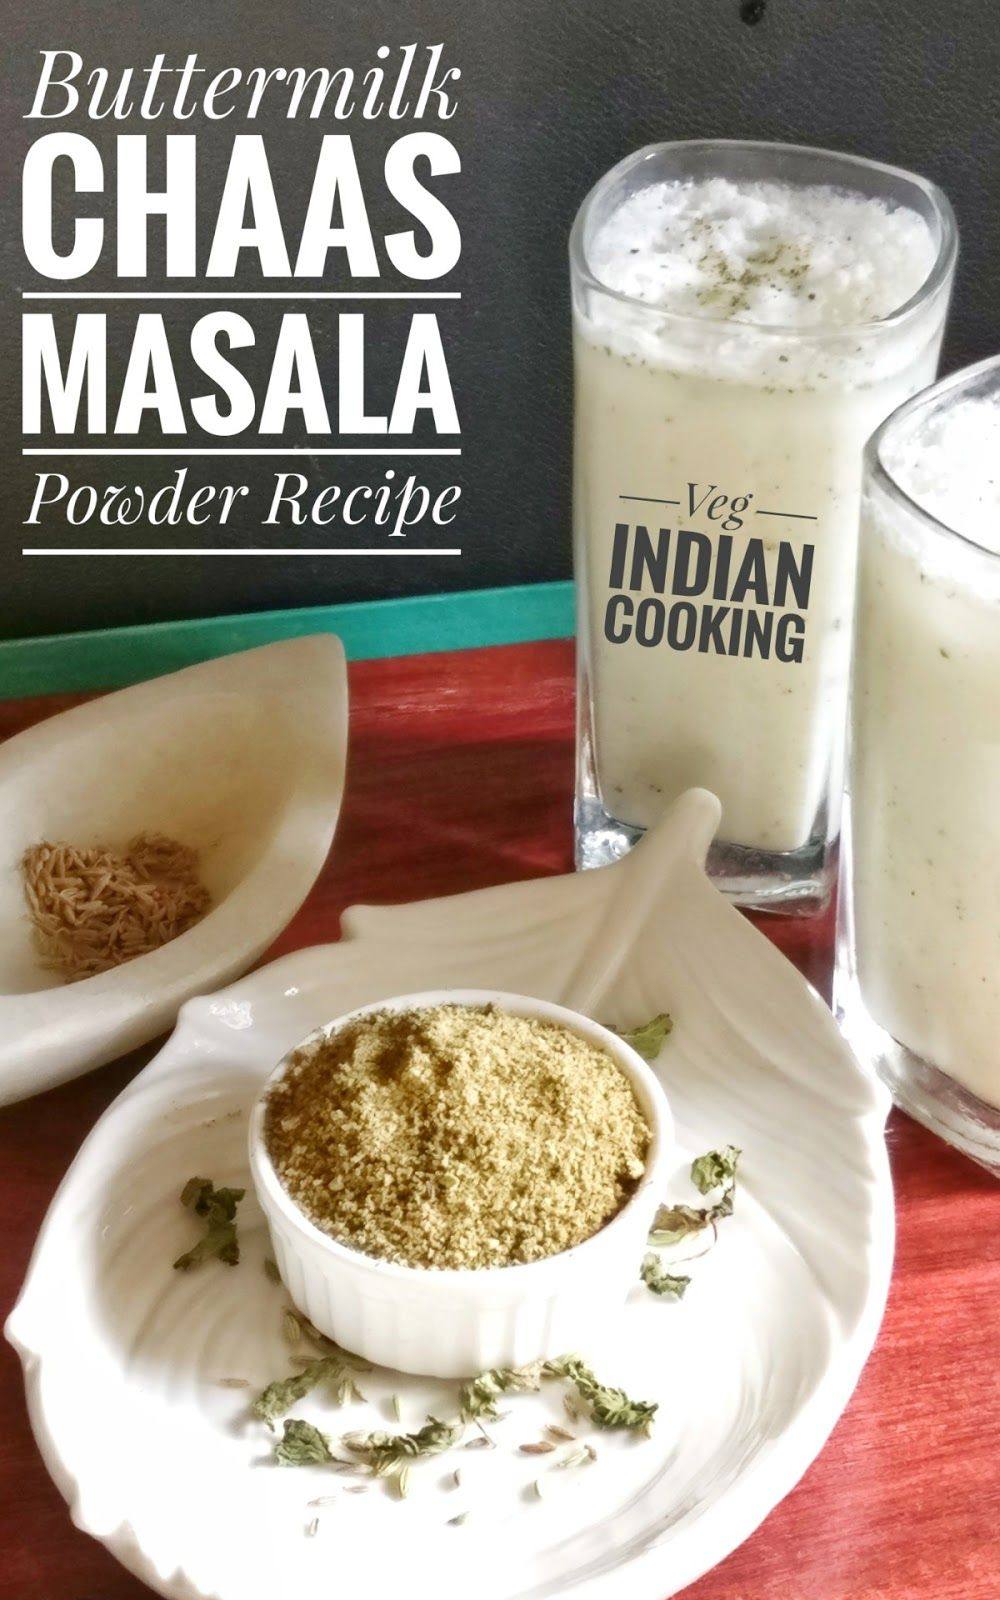 How To Make Mint Buttermilk Chaas Masala Powder Homemade Pudina Chaas Masala Powder Dry Pudina Ch Buttermilk Recipes Masala Powder Recipe Homemade Spices